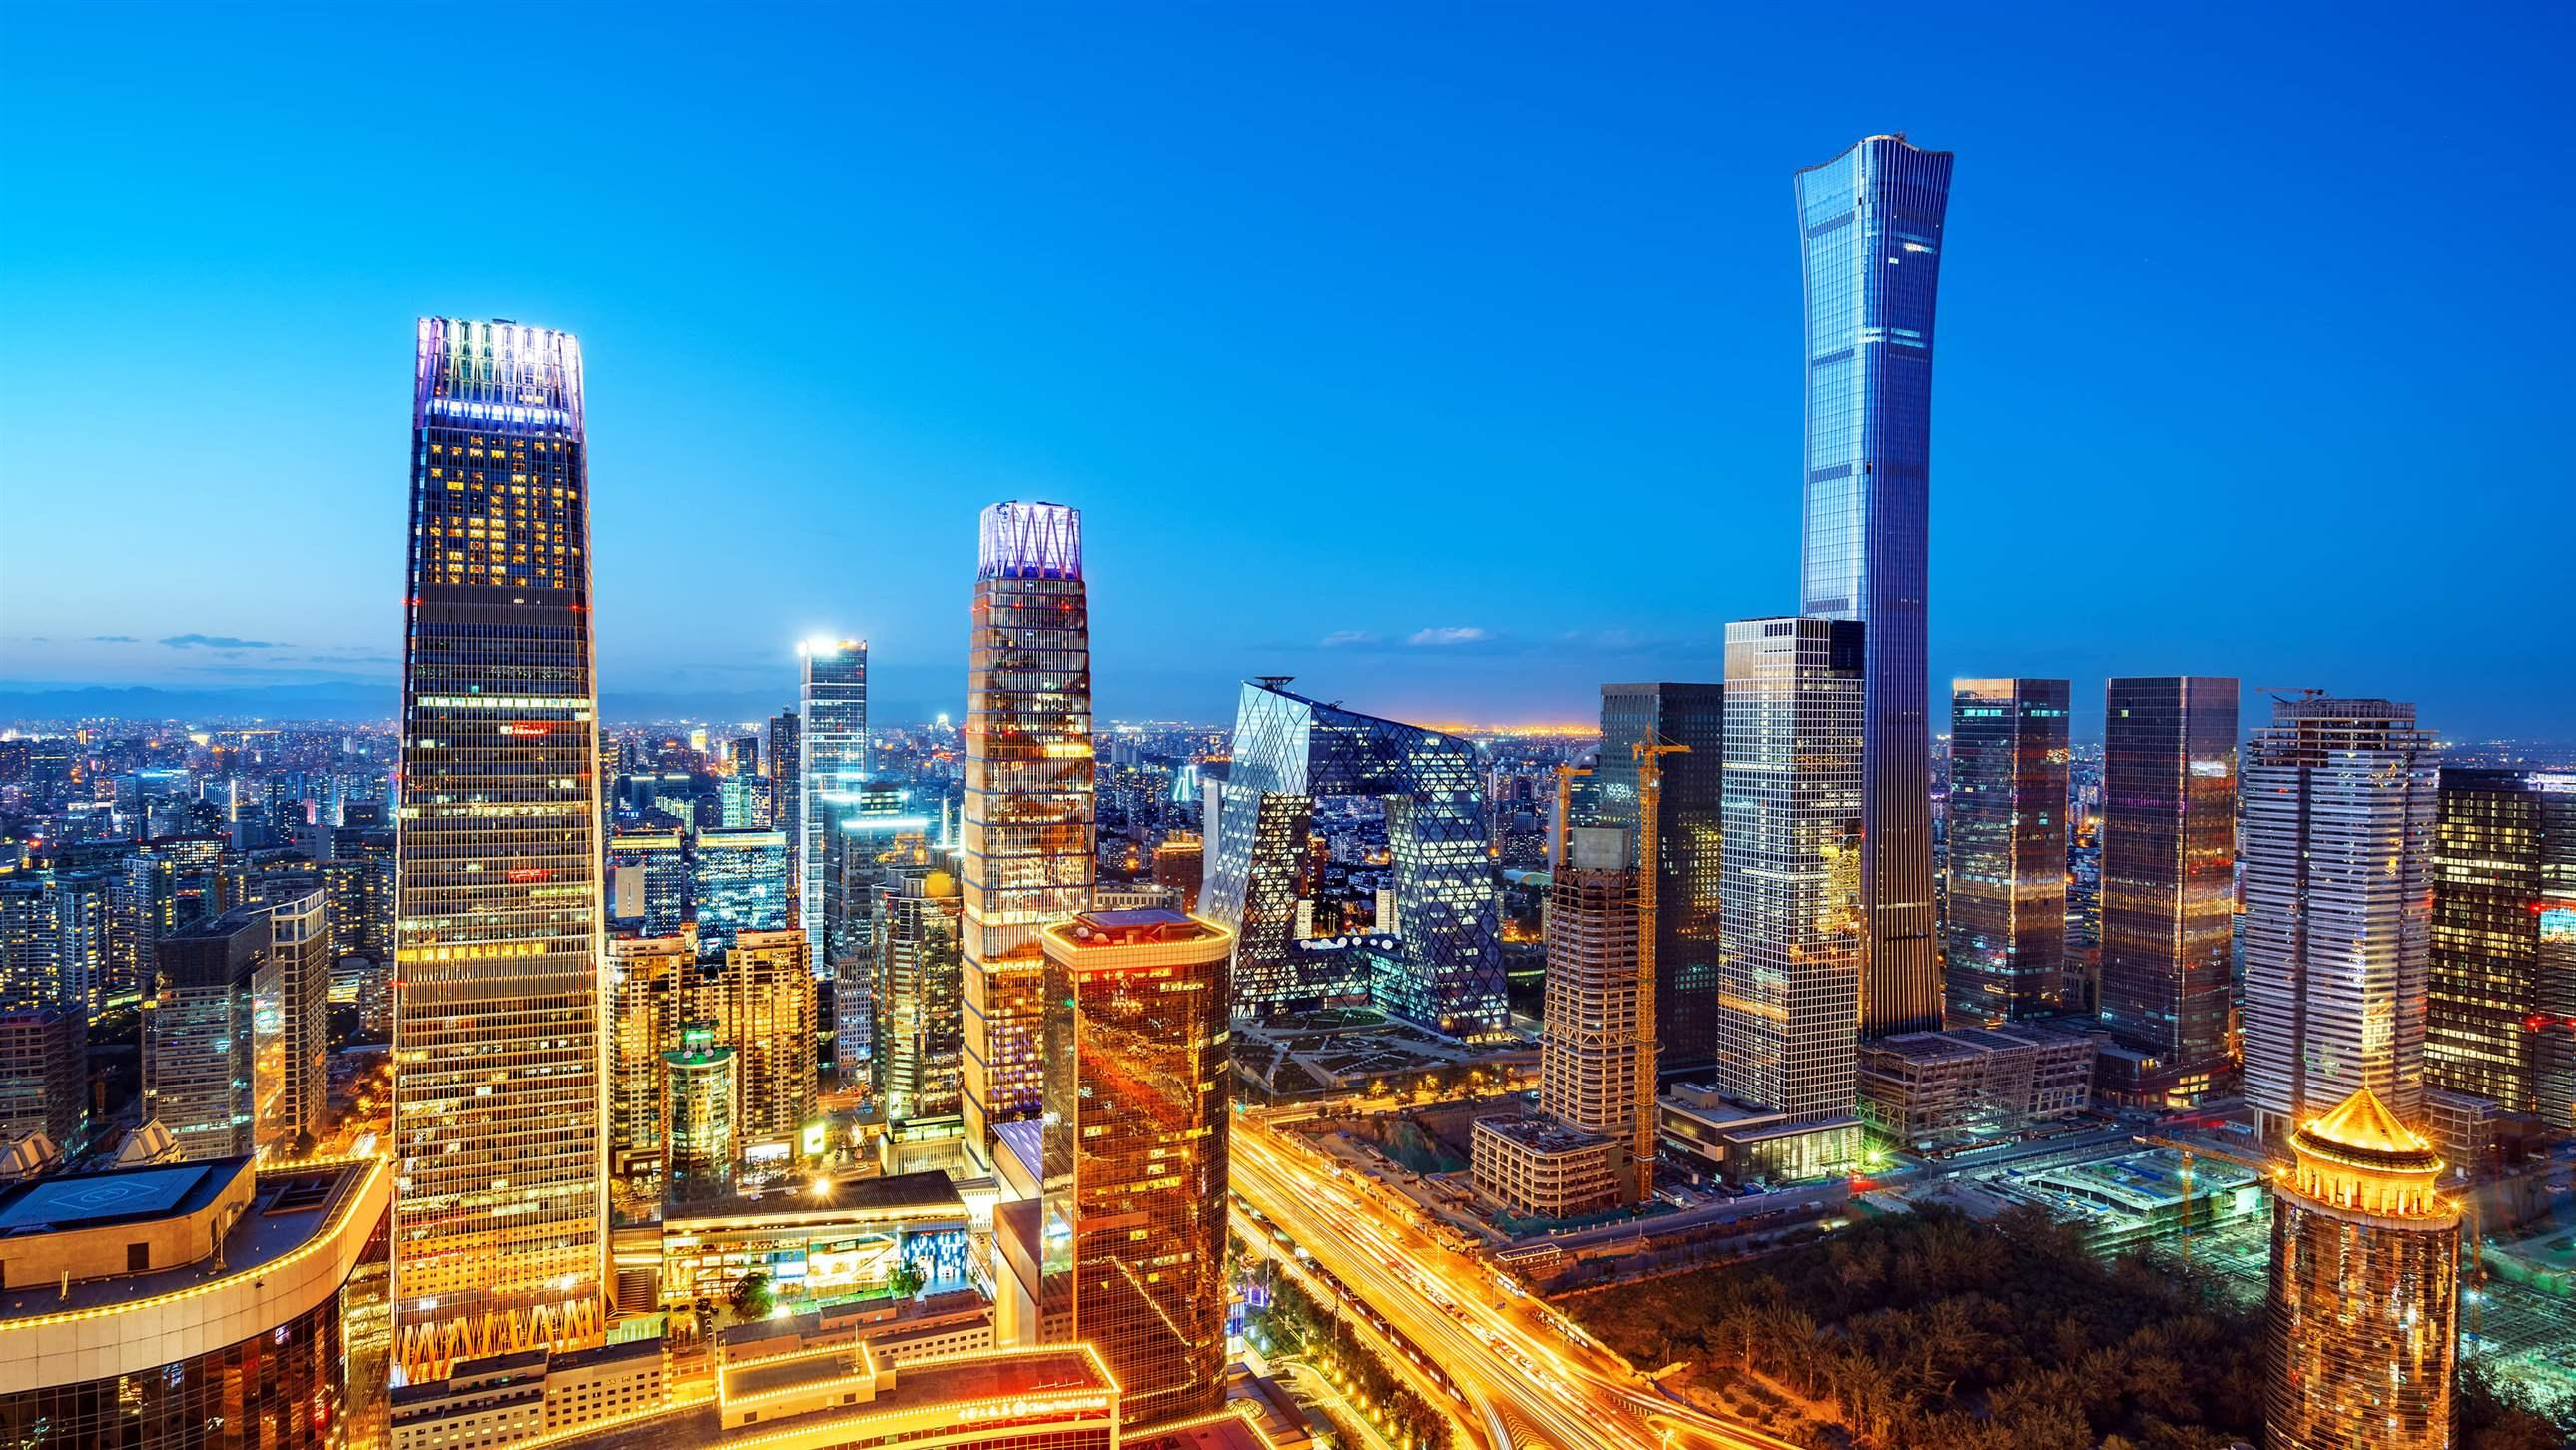 High-rise buildings and viaducts in the financial district of the city, night view of Beijing, China.